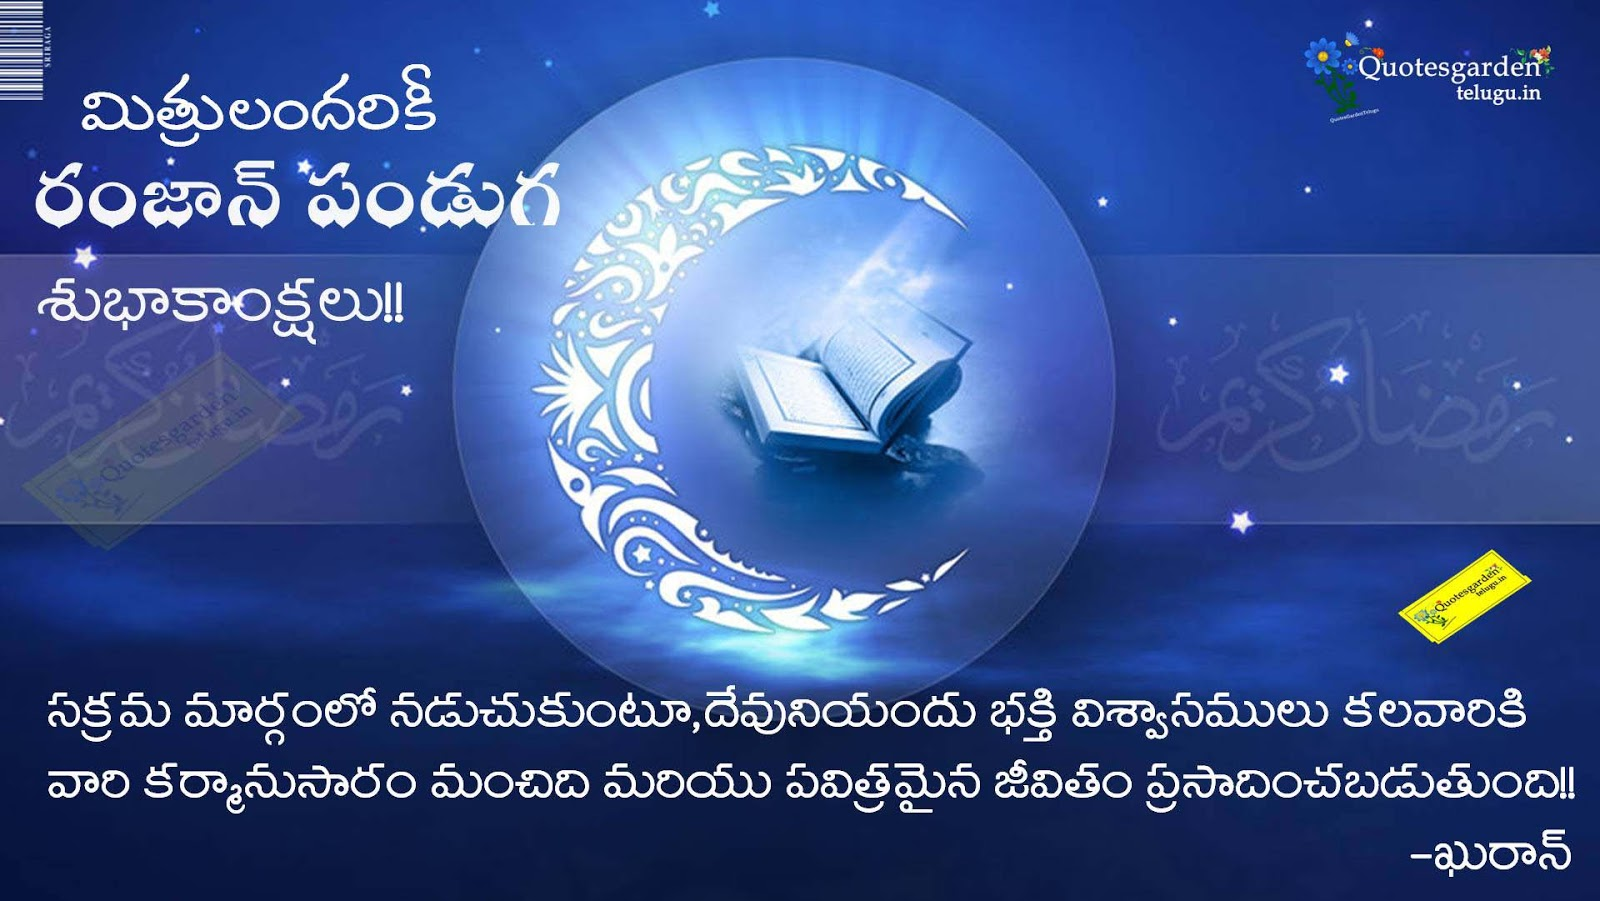 Telugu ramadan greetings wishes pictures images wallpapers khuran telugu ramadan greetings wishes pictures images wallpapers khuran readings quotes messages wallpapers kristyandbryce Choice Image